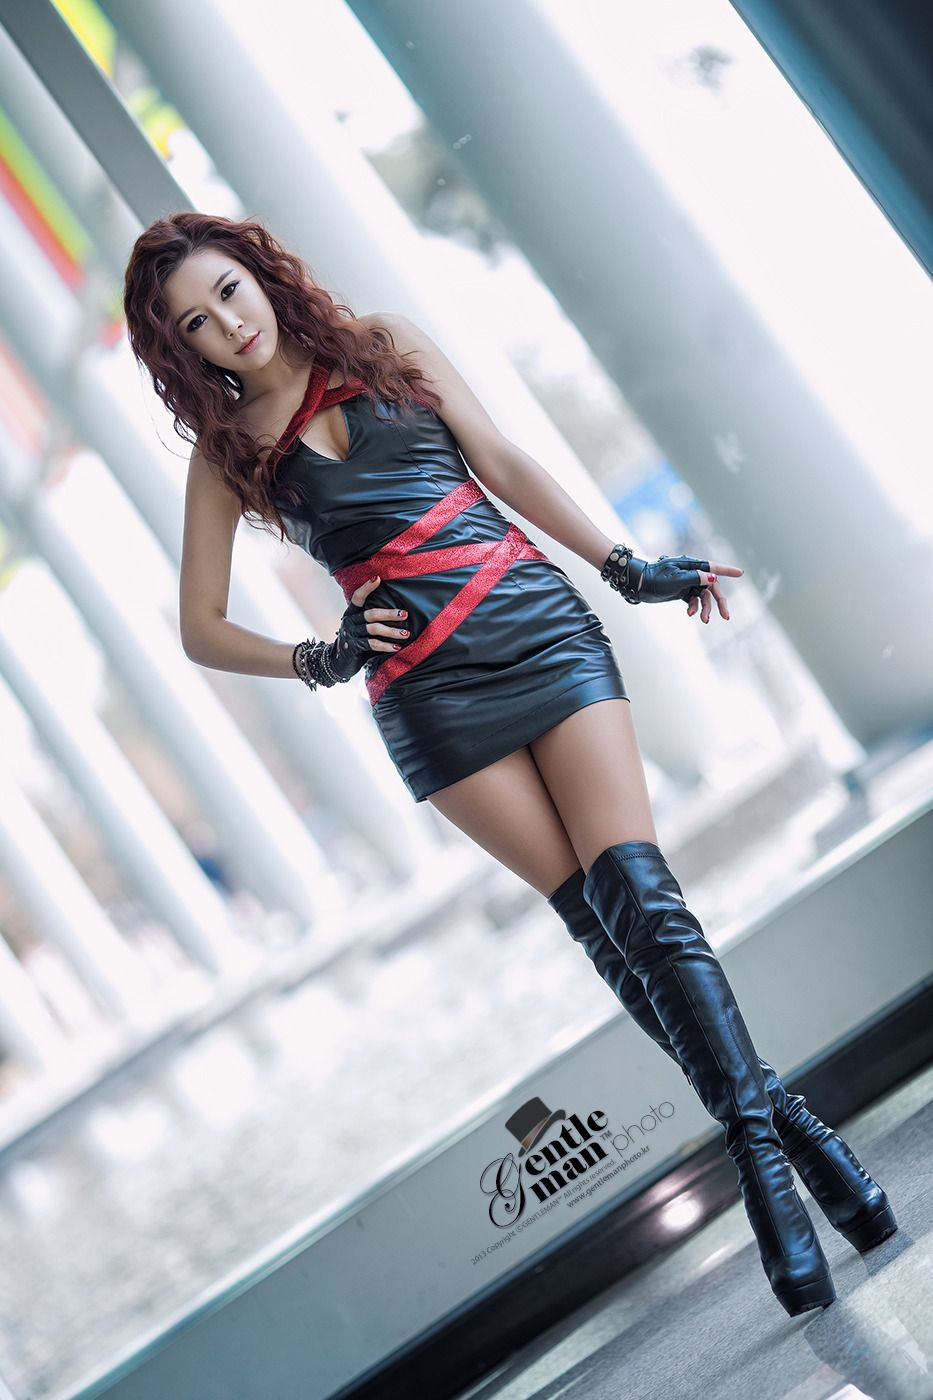 Accept. Sexy asian girl boots thanks